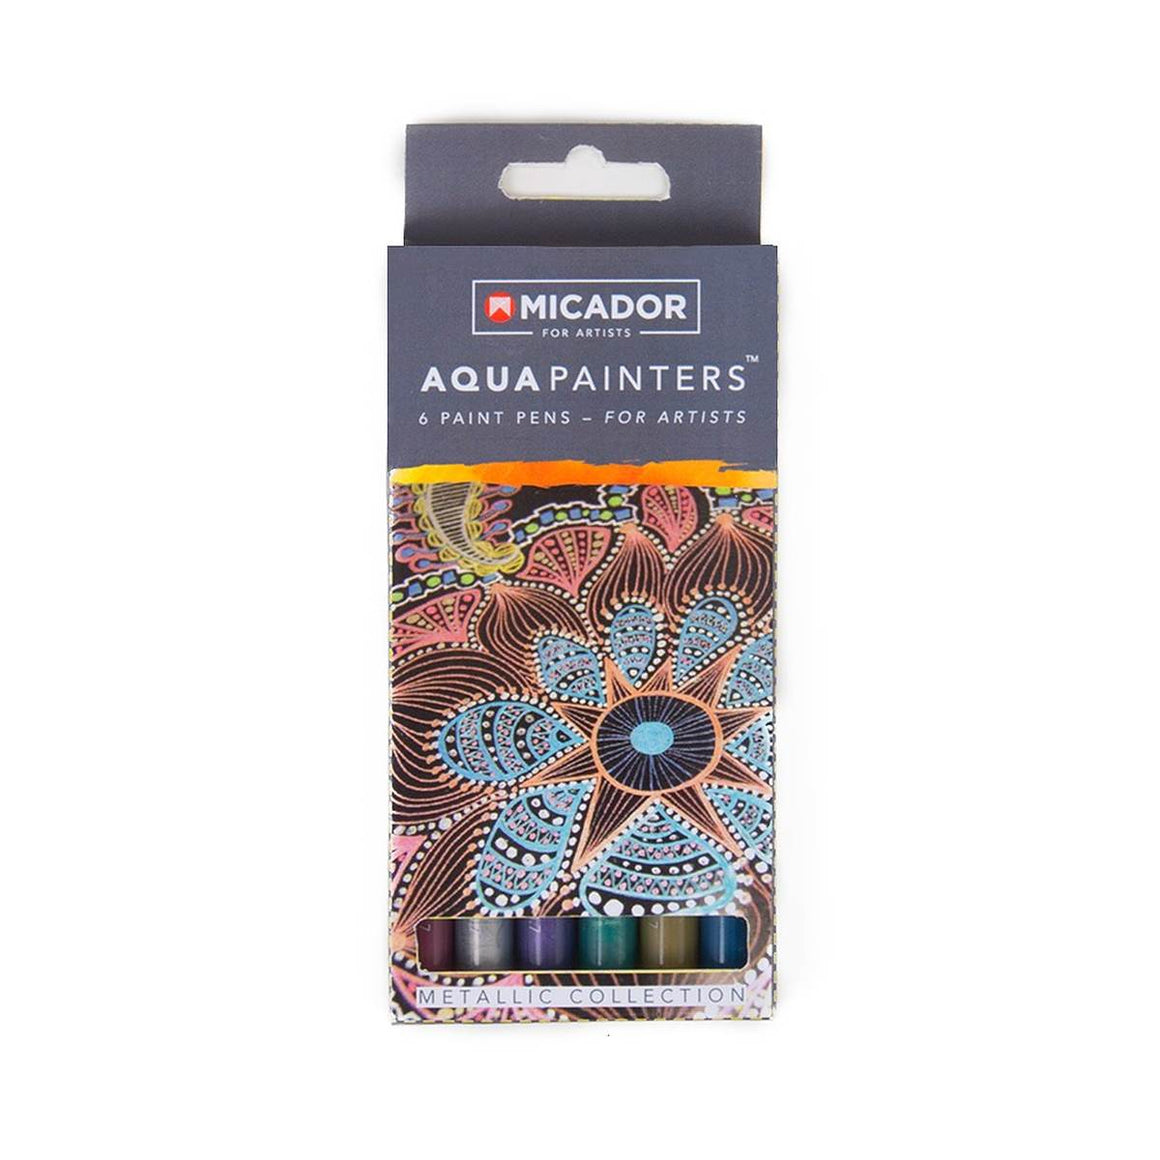 "Micador Australia Pty LtdA boxed set of 6 metallic paint pens ""for artists"". Colours included are: Silver, Gold, Red, Purple, Blue and Green."